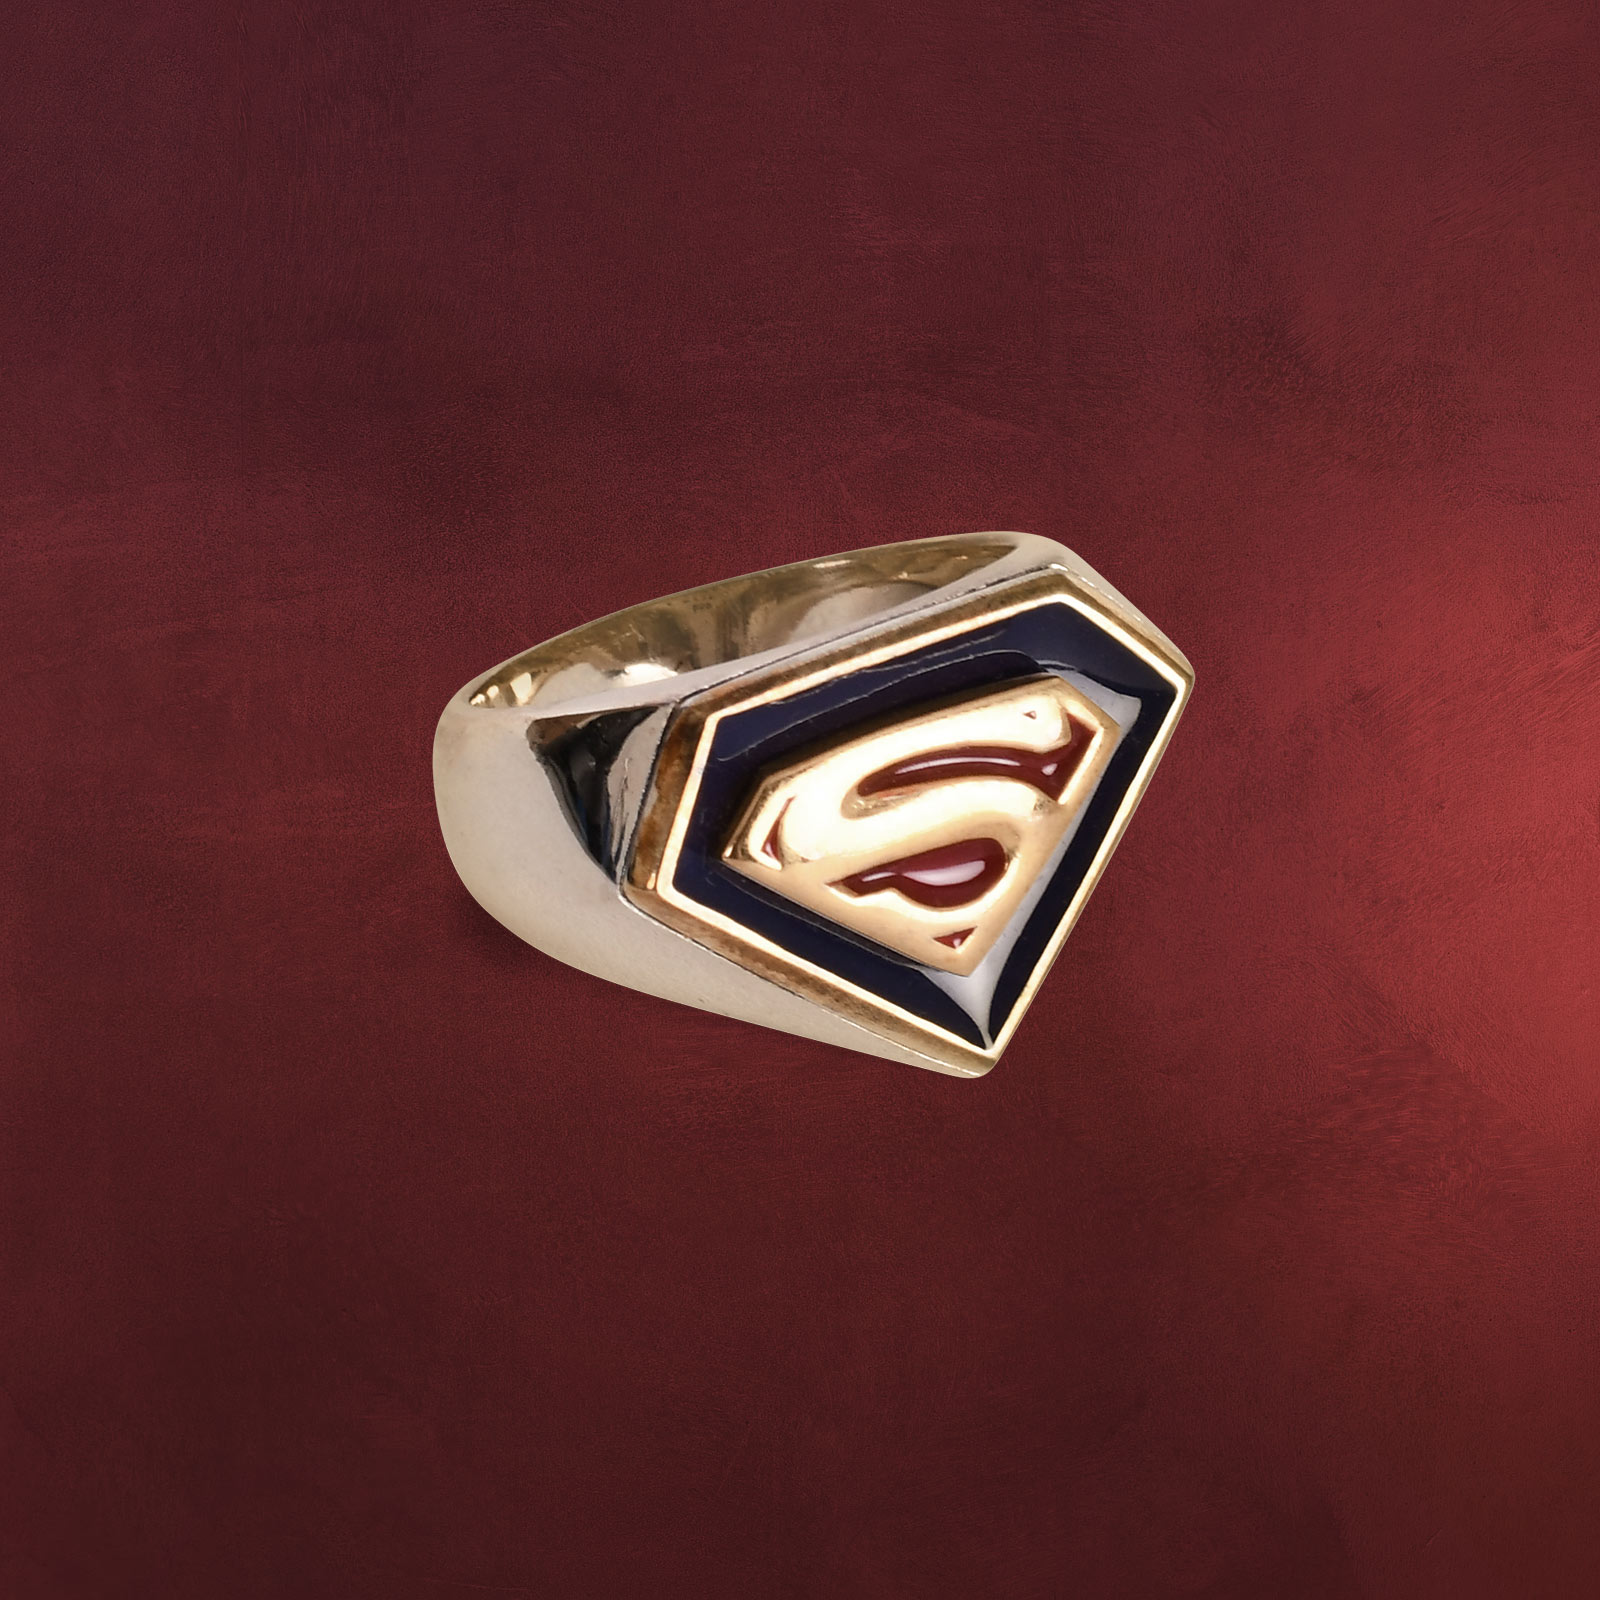 Superman Returns Symbol Ring, Sterling Silber, Symbol Mit. Witch King Rings. Exclusive Wedding Rings. Rune Wedding Rings. Gotti Wedding Rings. $25 Engagement Rings. 10 Stone Rings. Pirouette Wedding Rings. Pale Yellow Engagement Rings